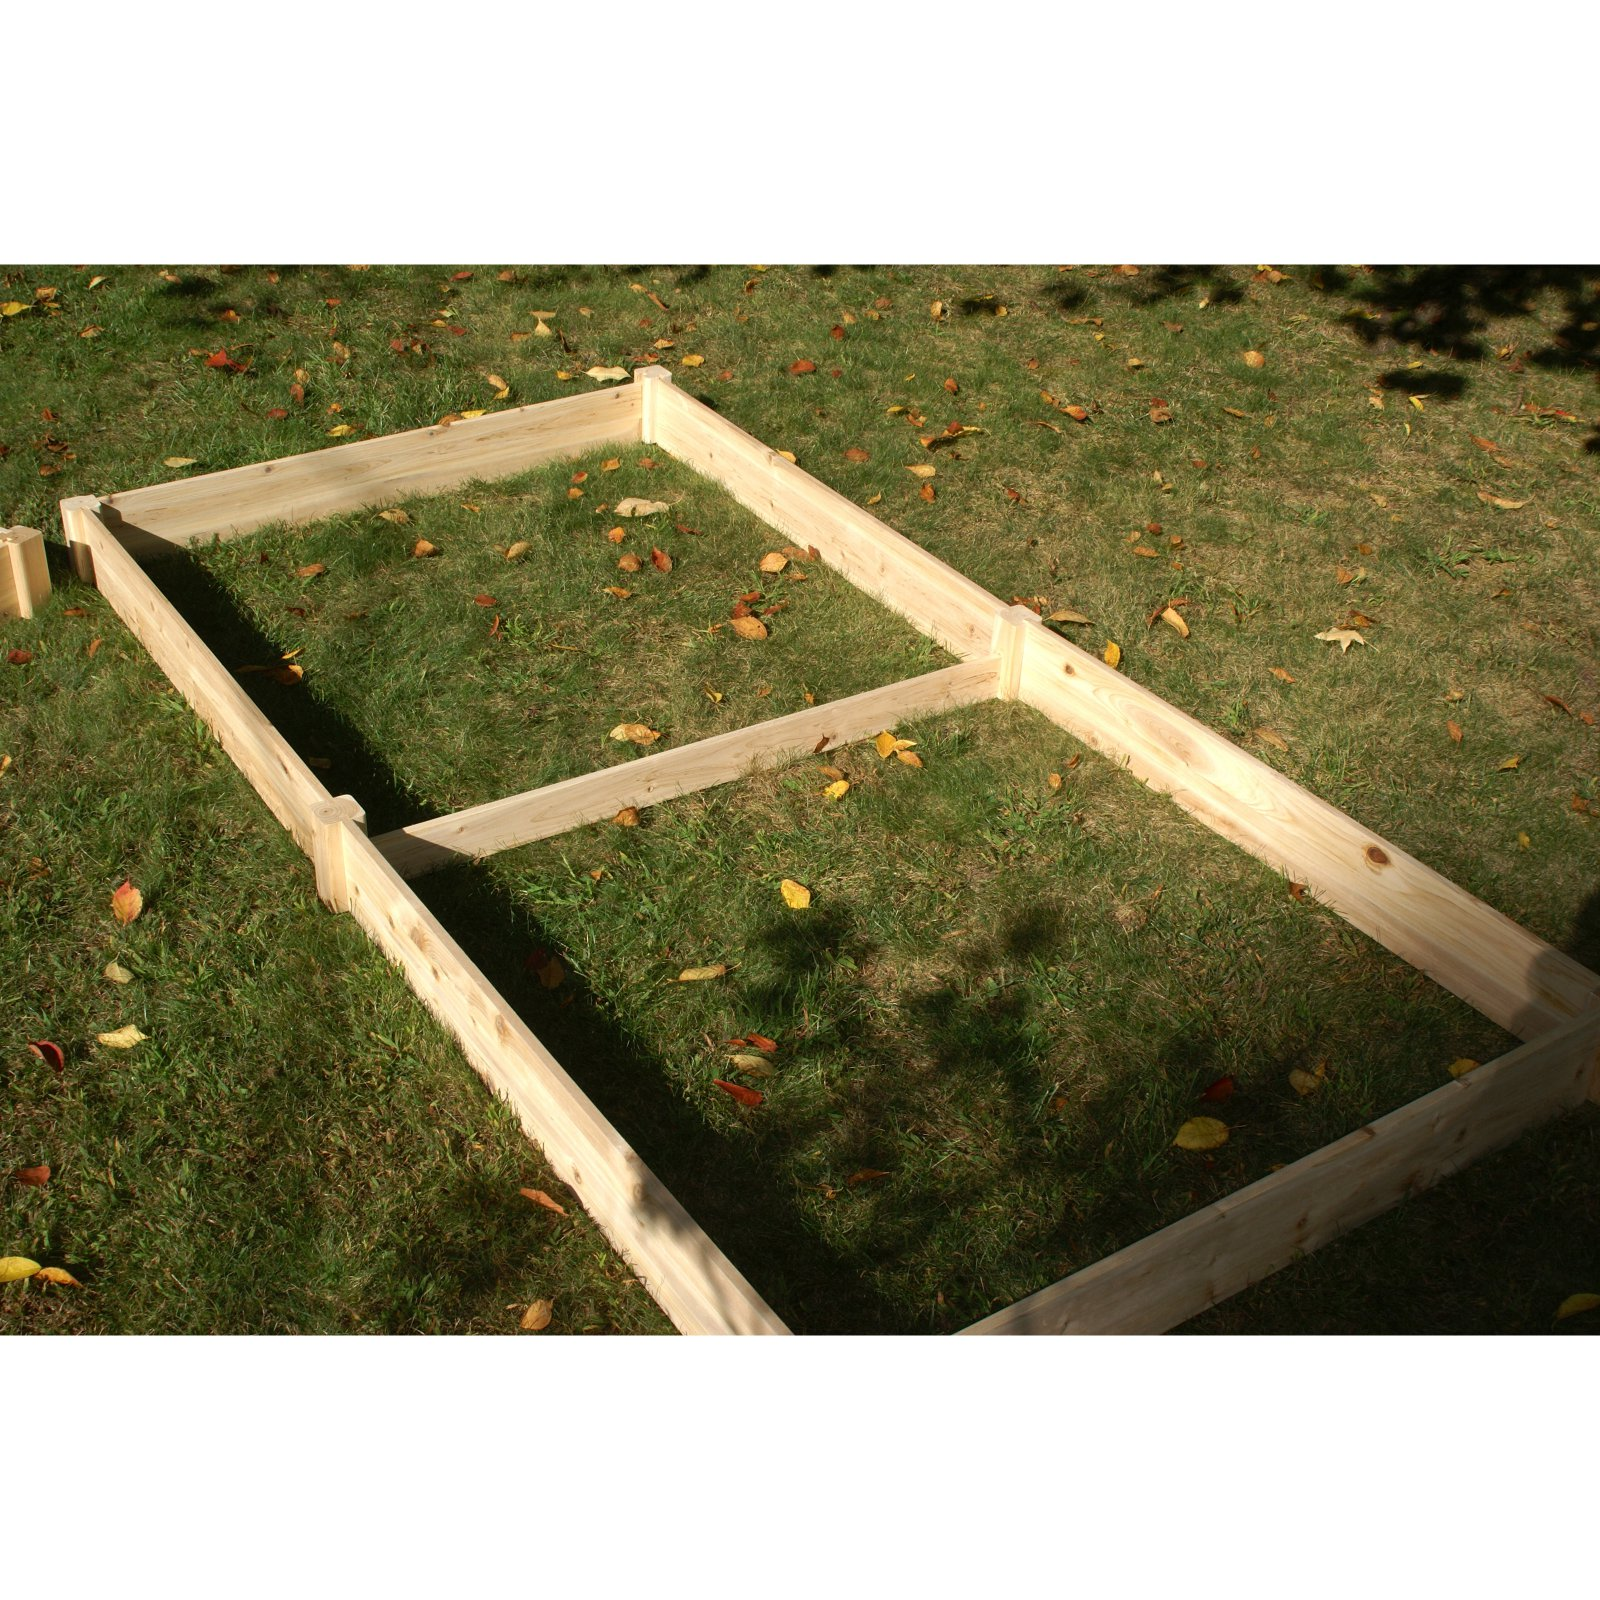 Eden Quick Assembly Raised Garden Bed